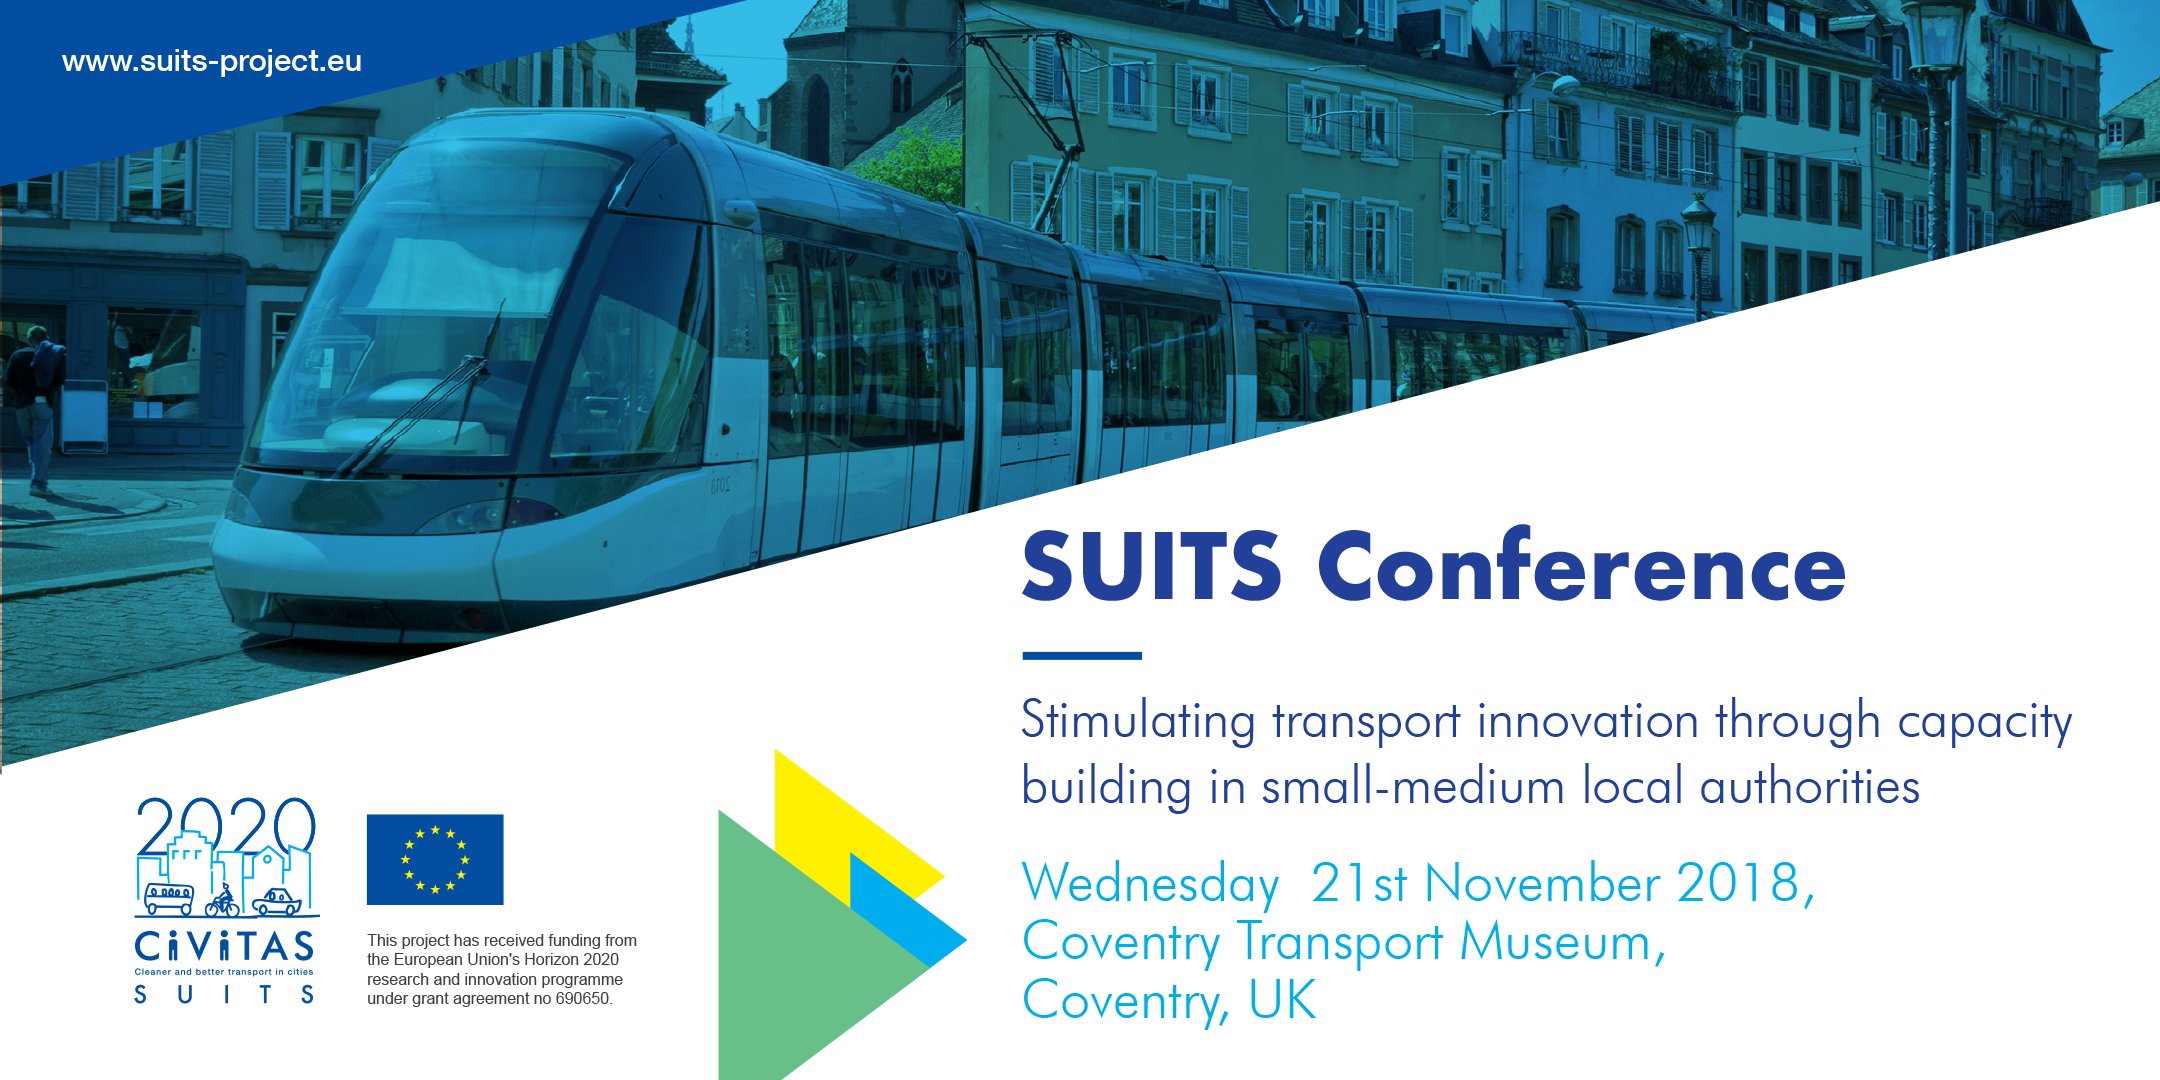 Join us at SUITS Conference, 21st November, Coventry